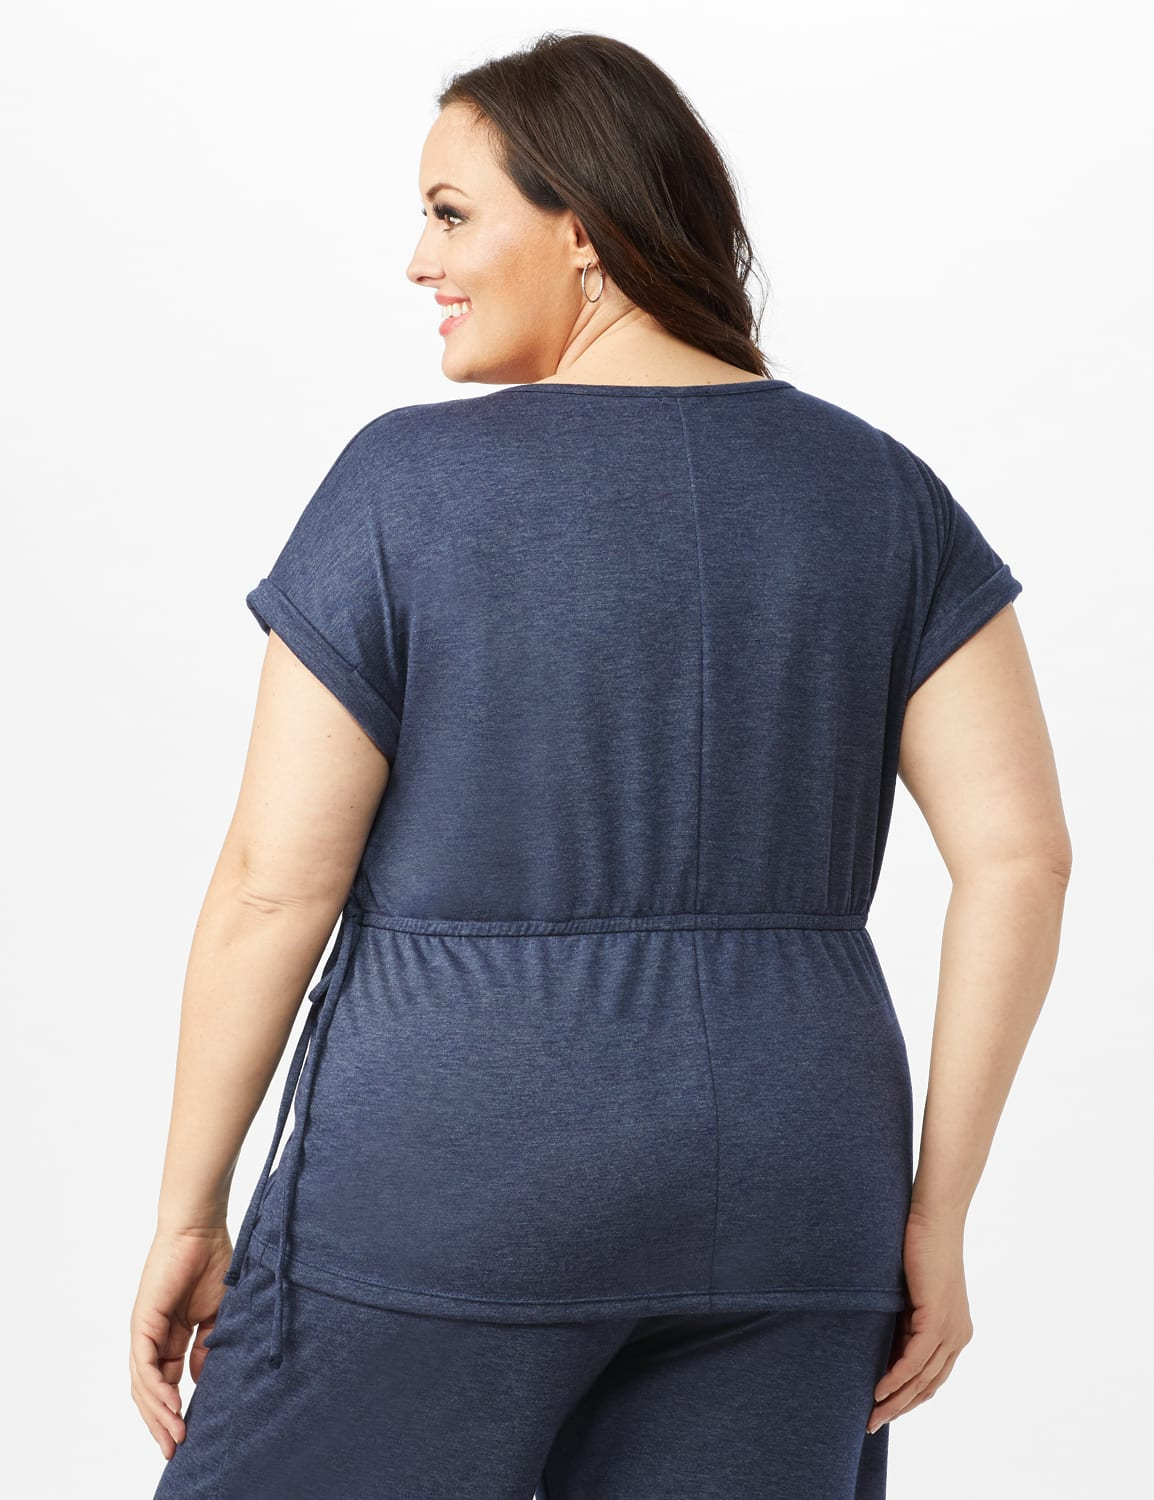 Cinch Waist Heathered Knit Top - Plus - Blue - Back